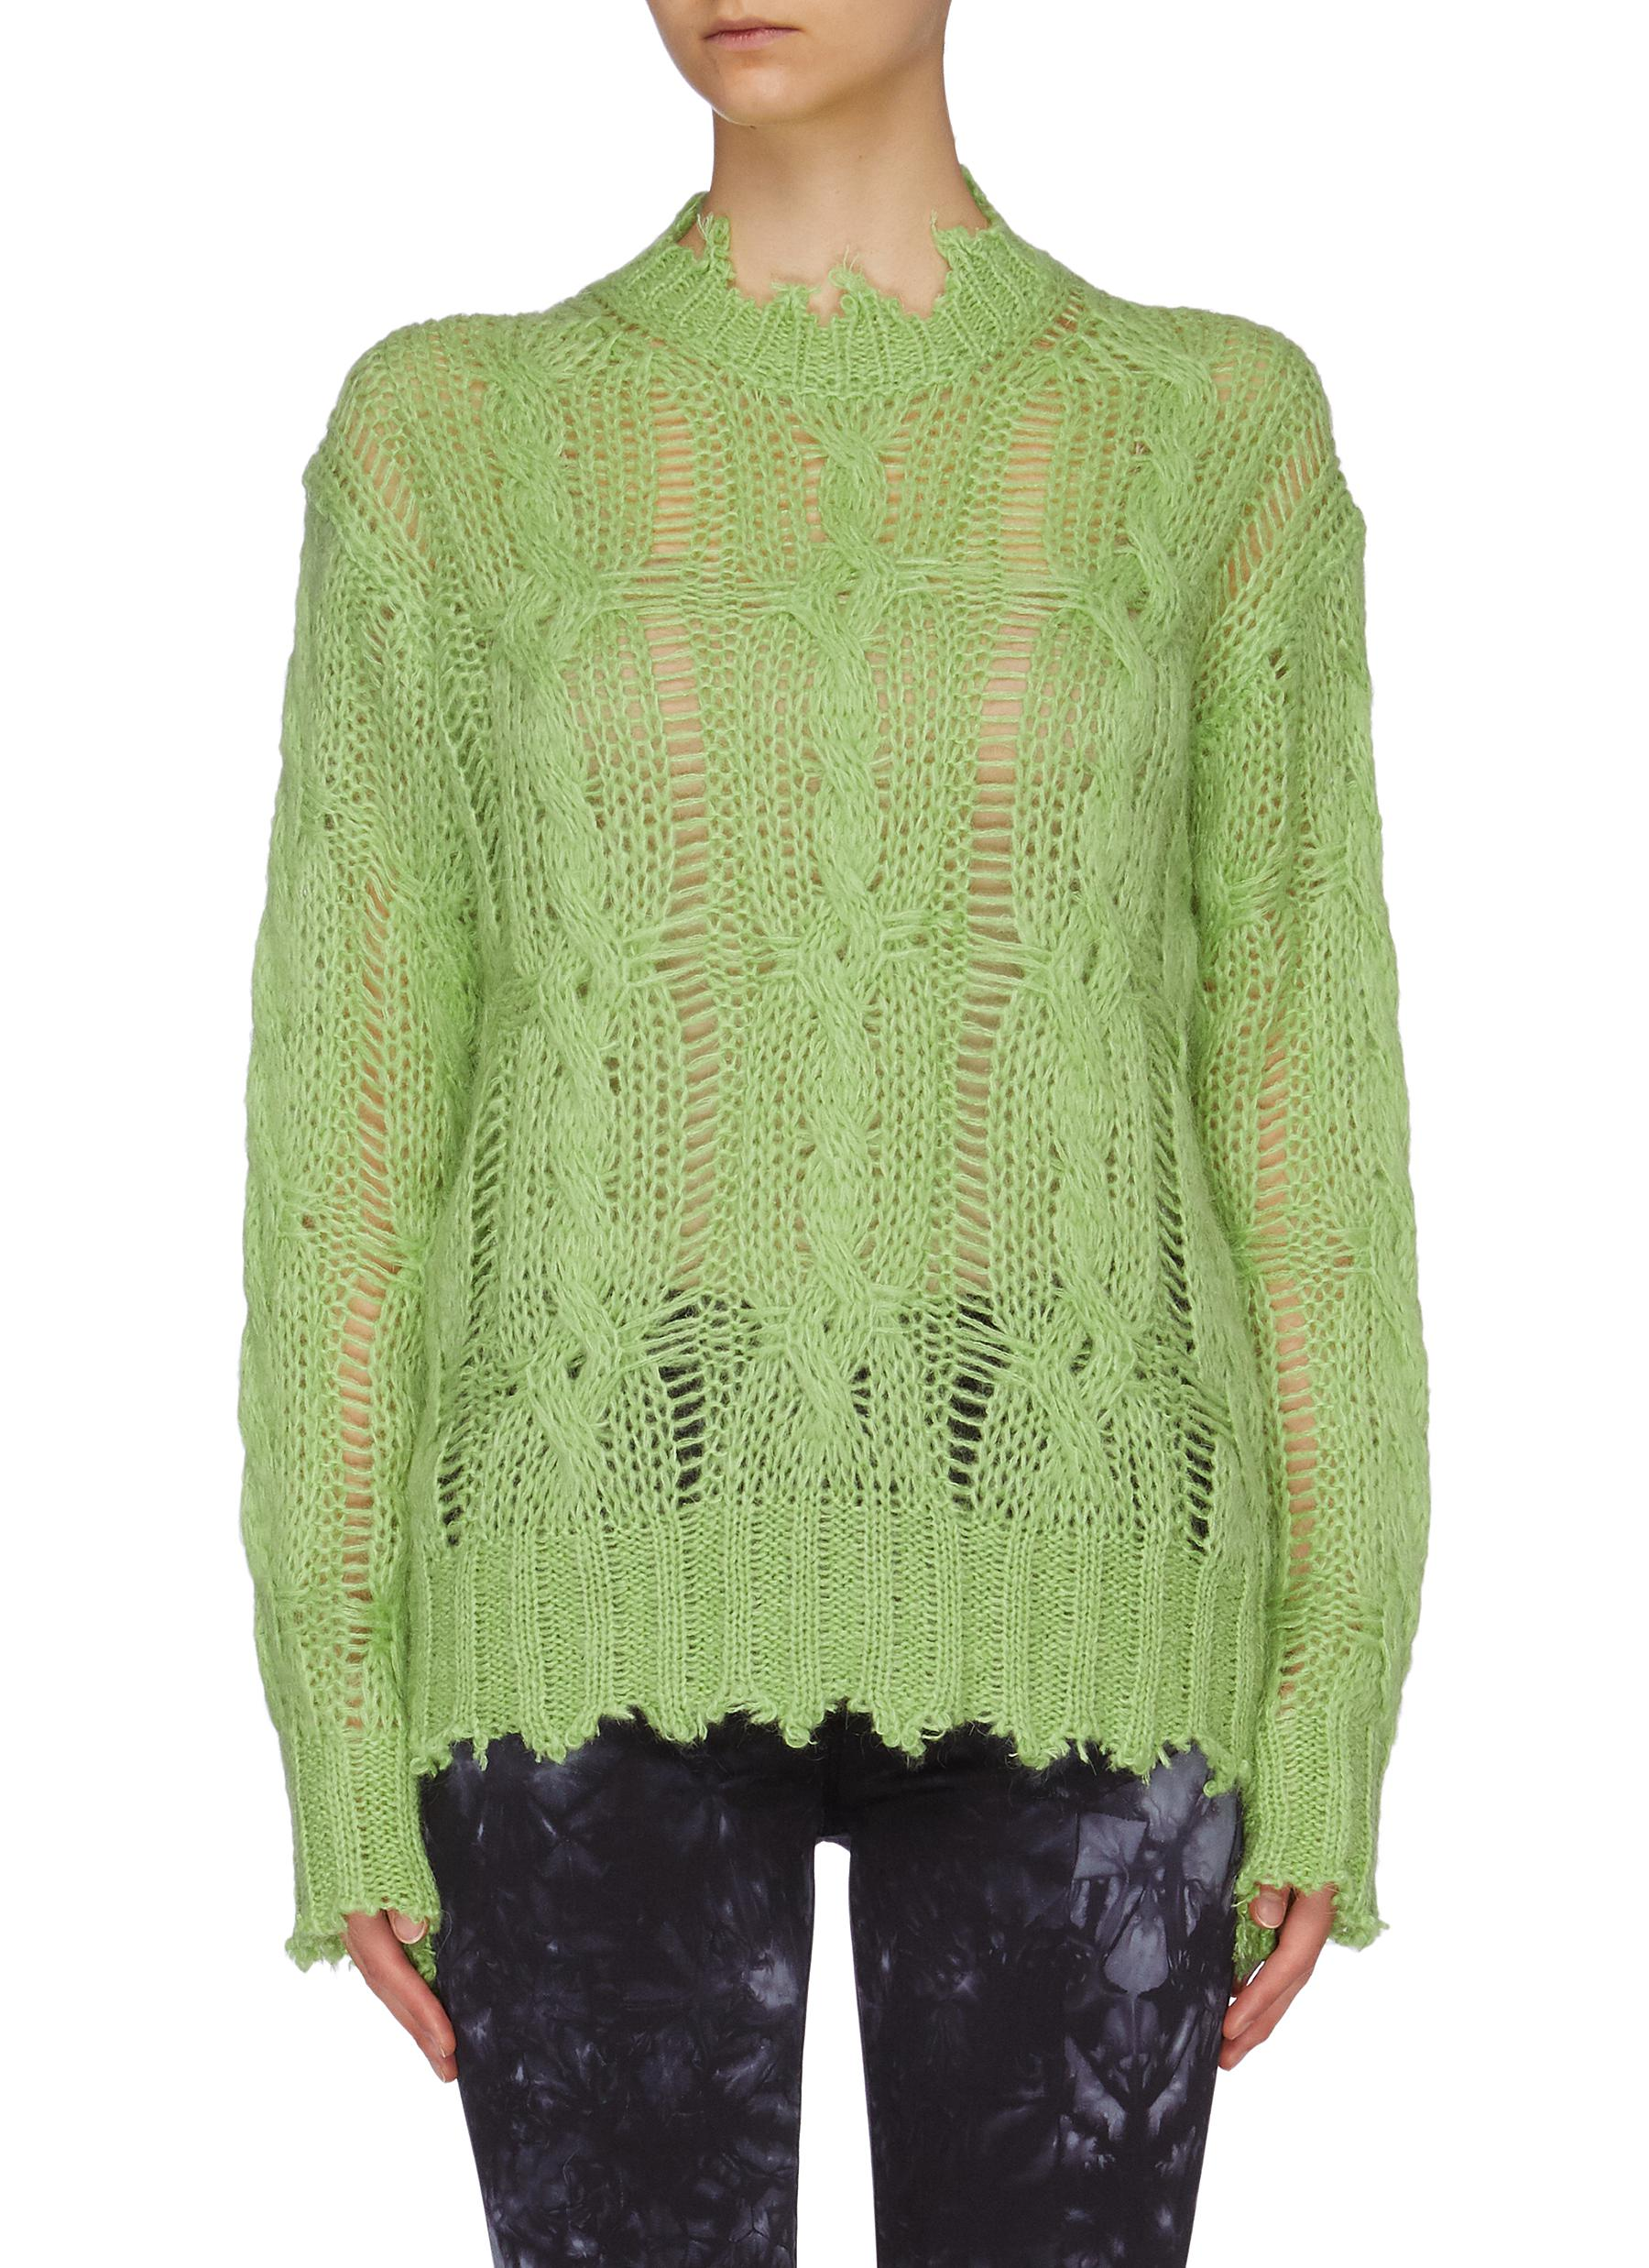 Distressed cable knit sweater by Acne Studios